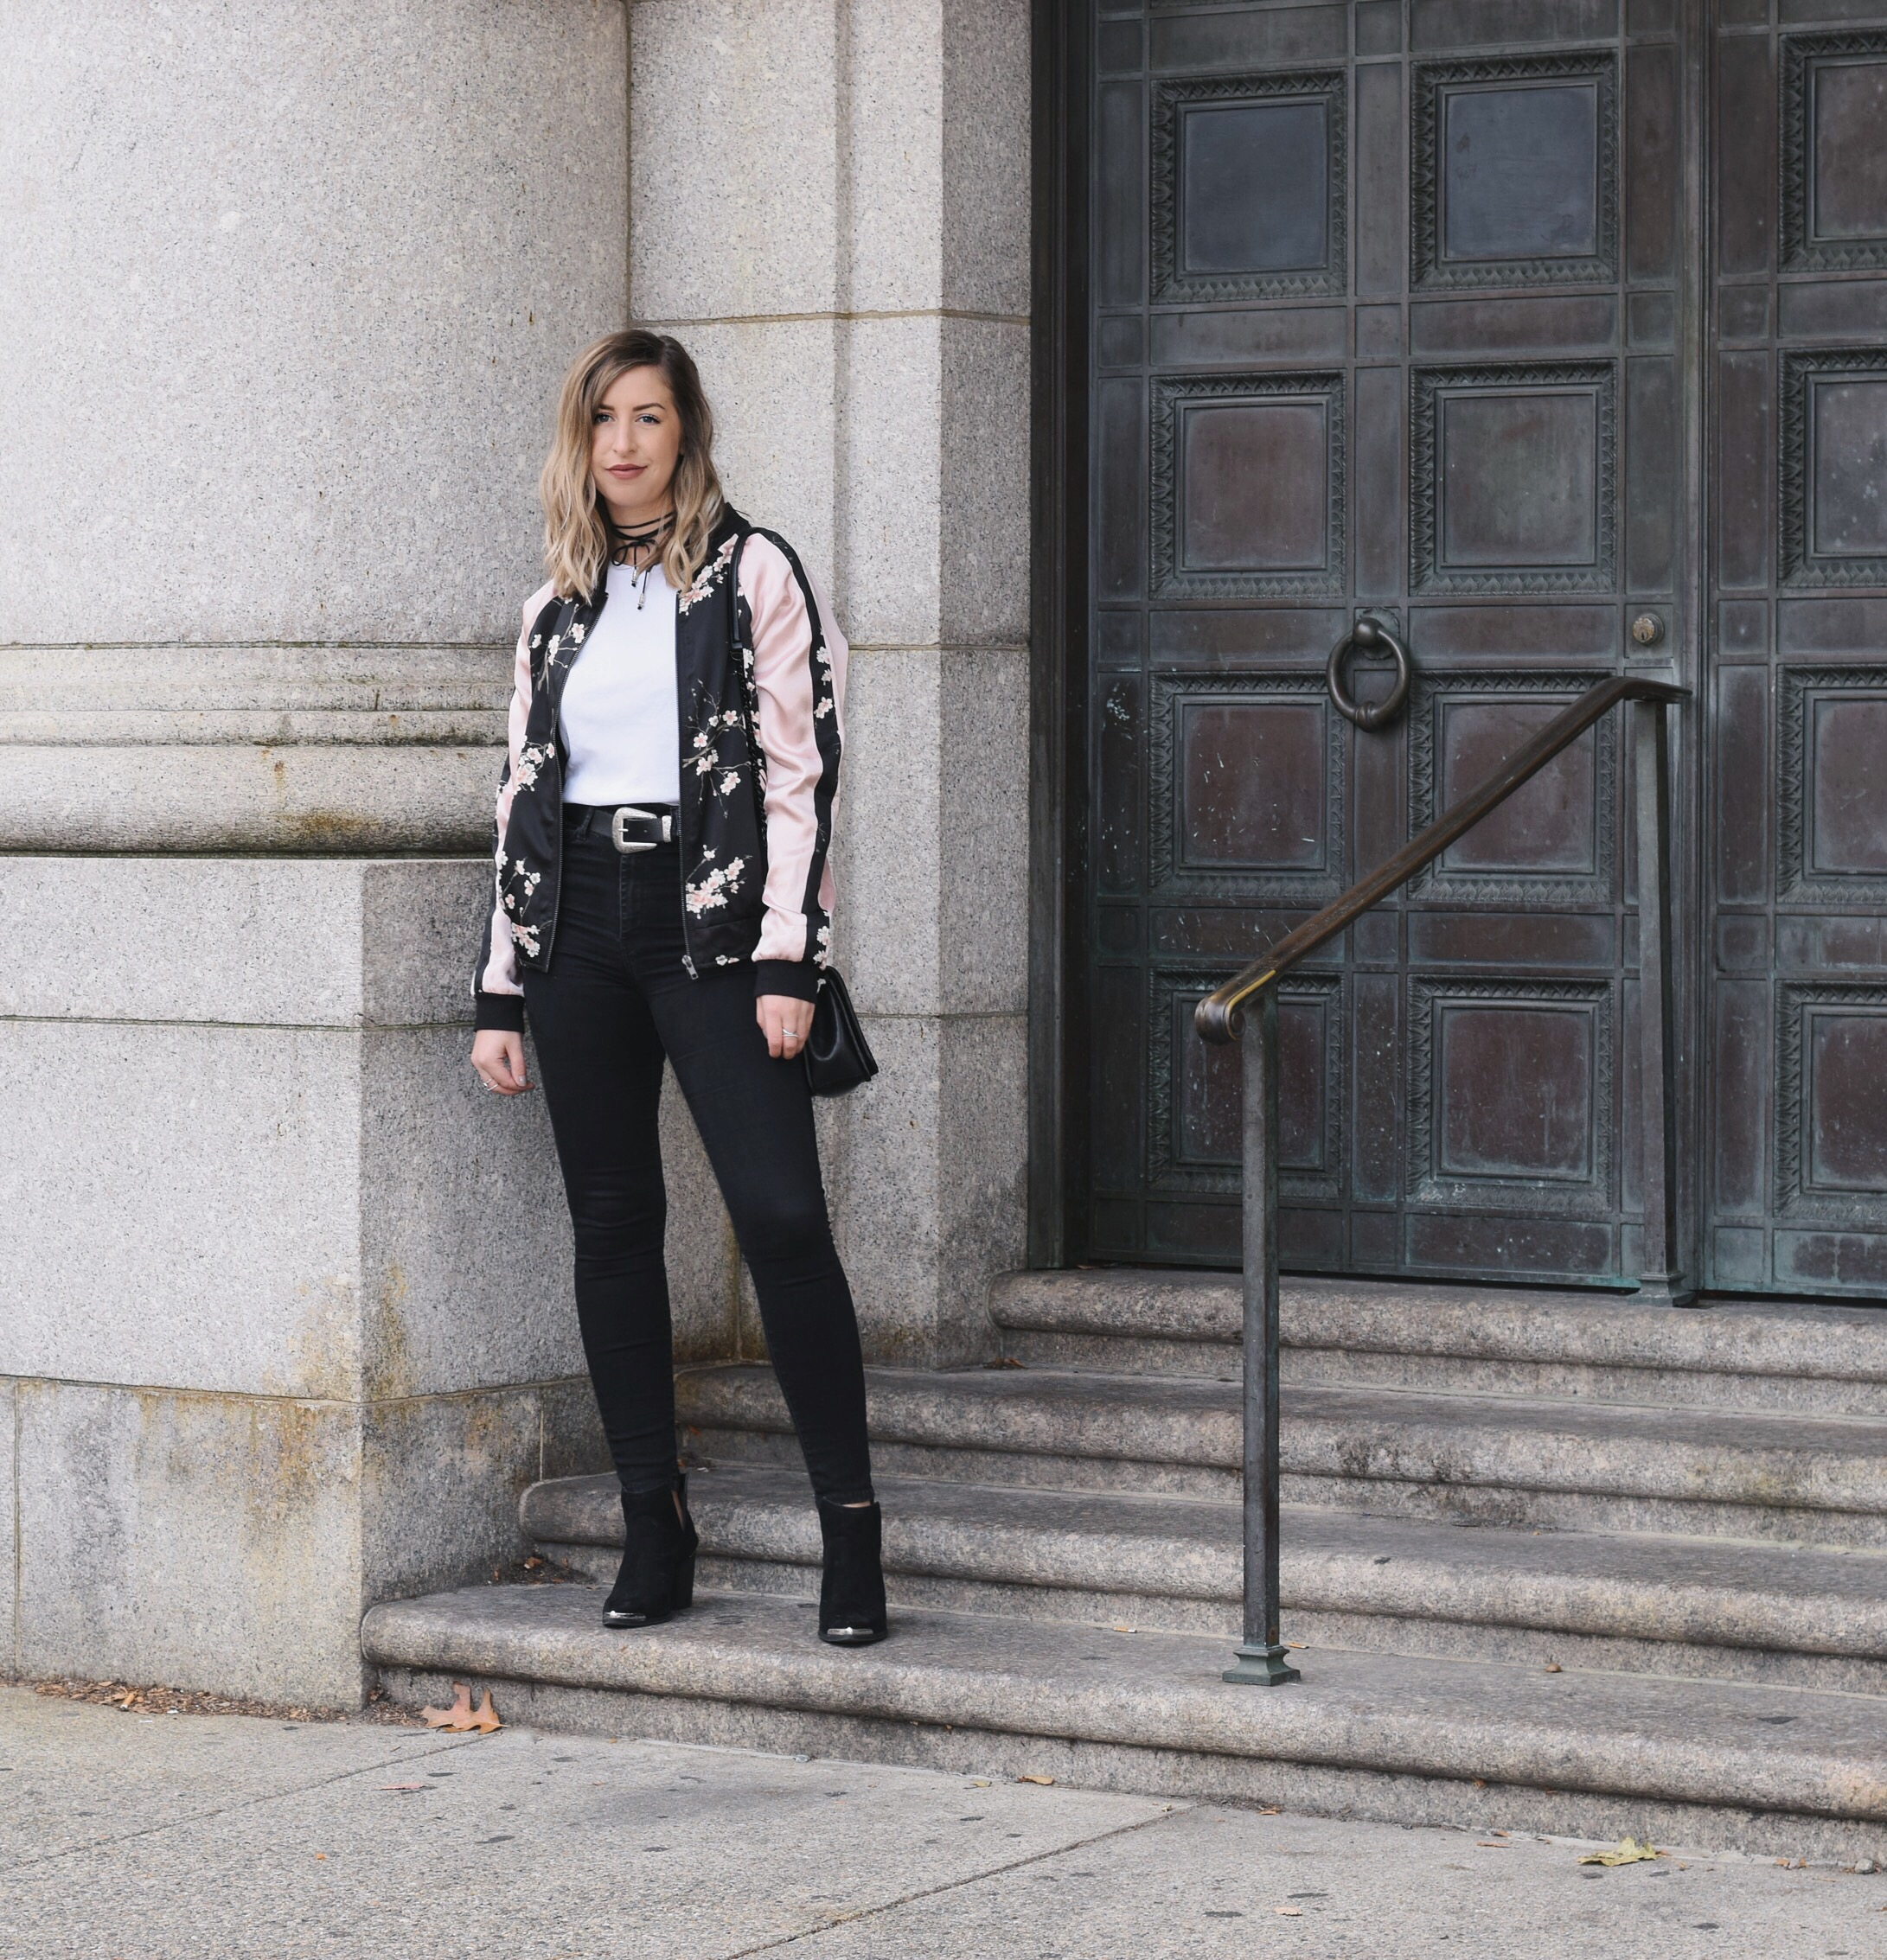 wearing a floral bomber jacket for fall